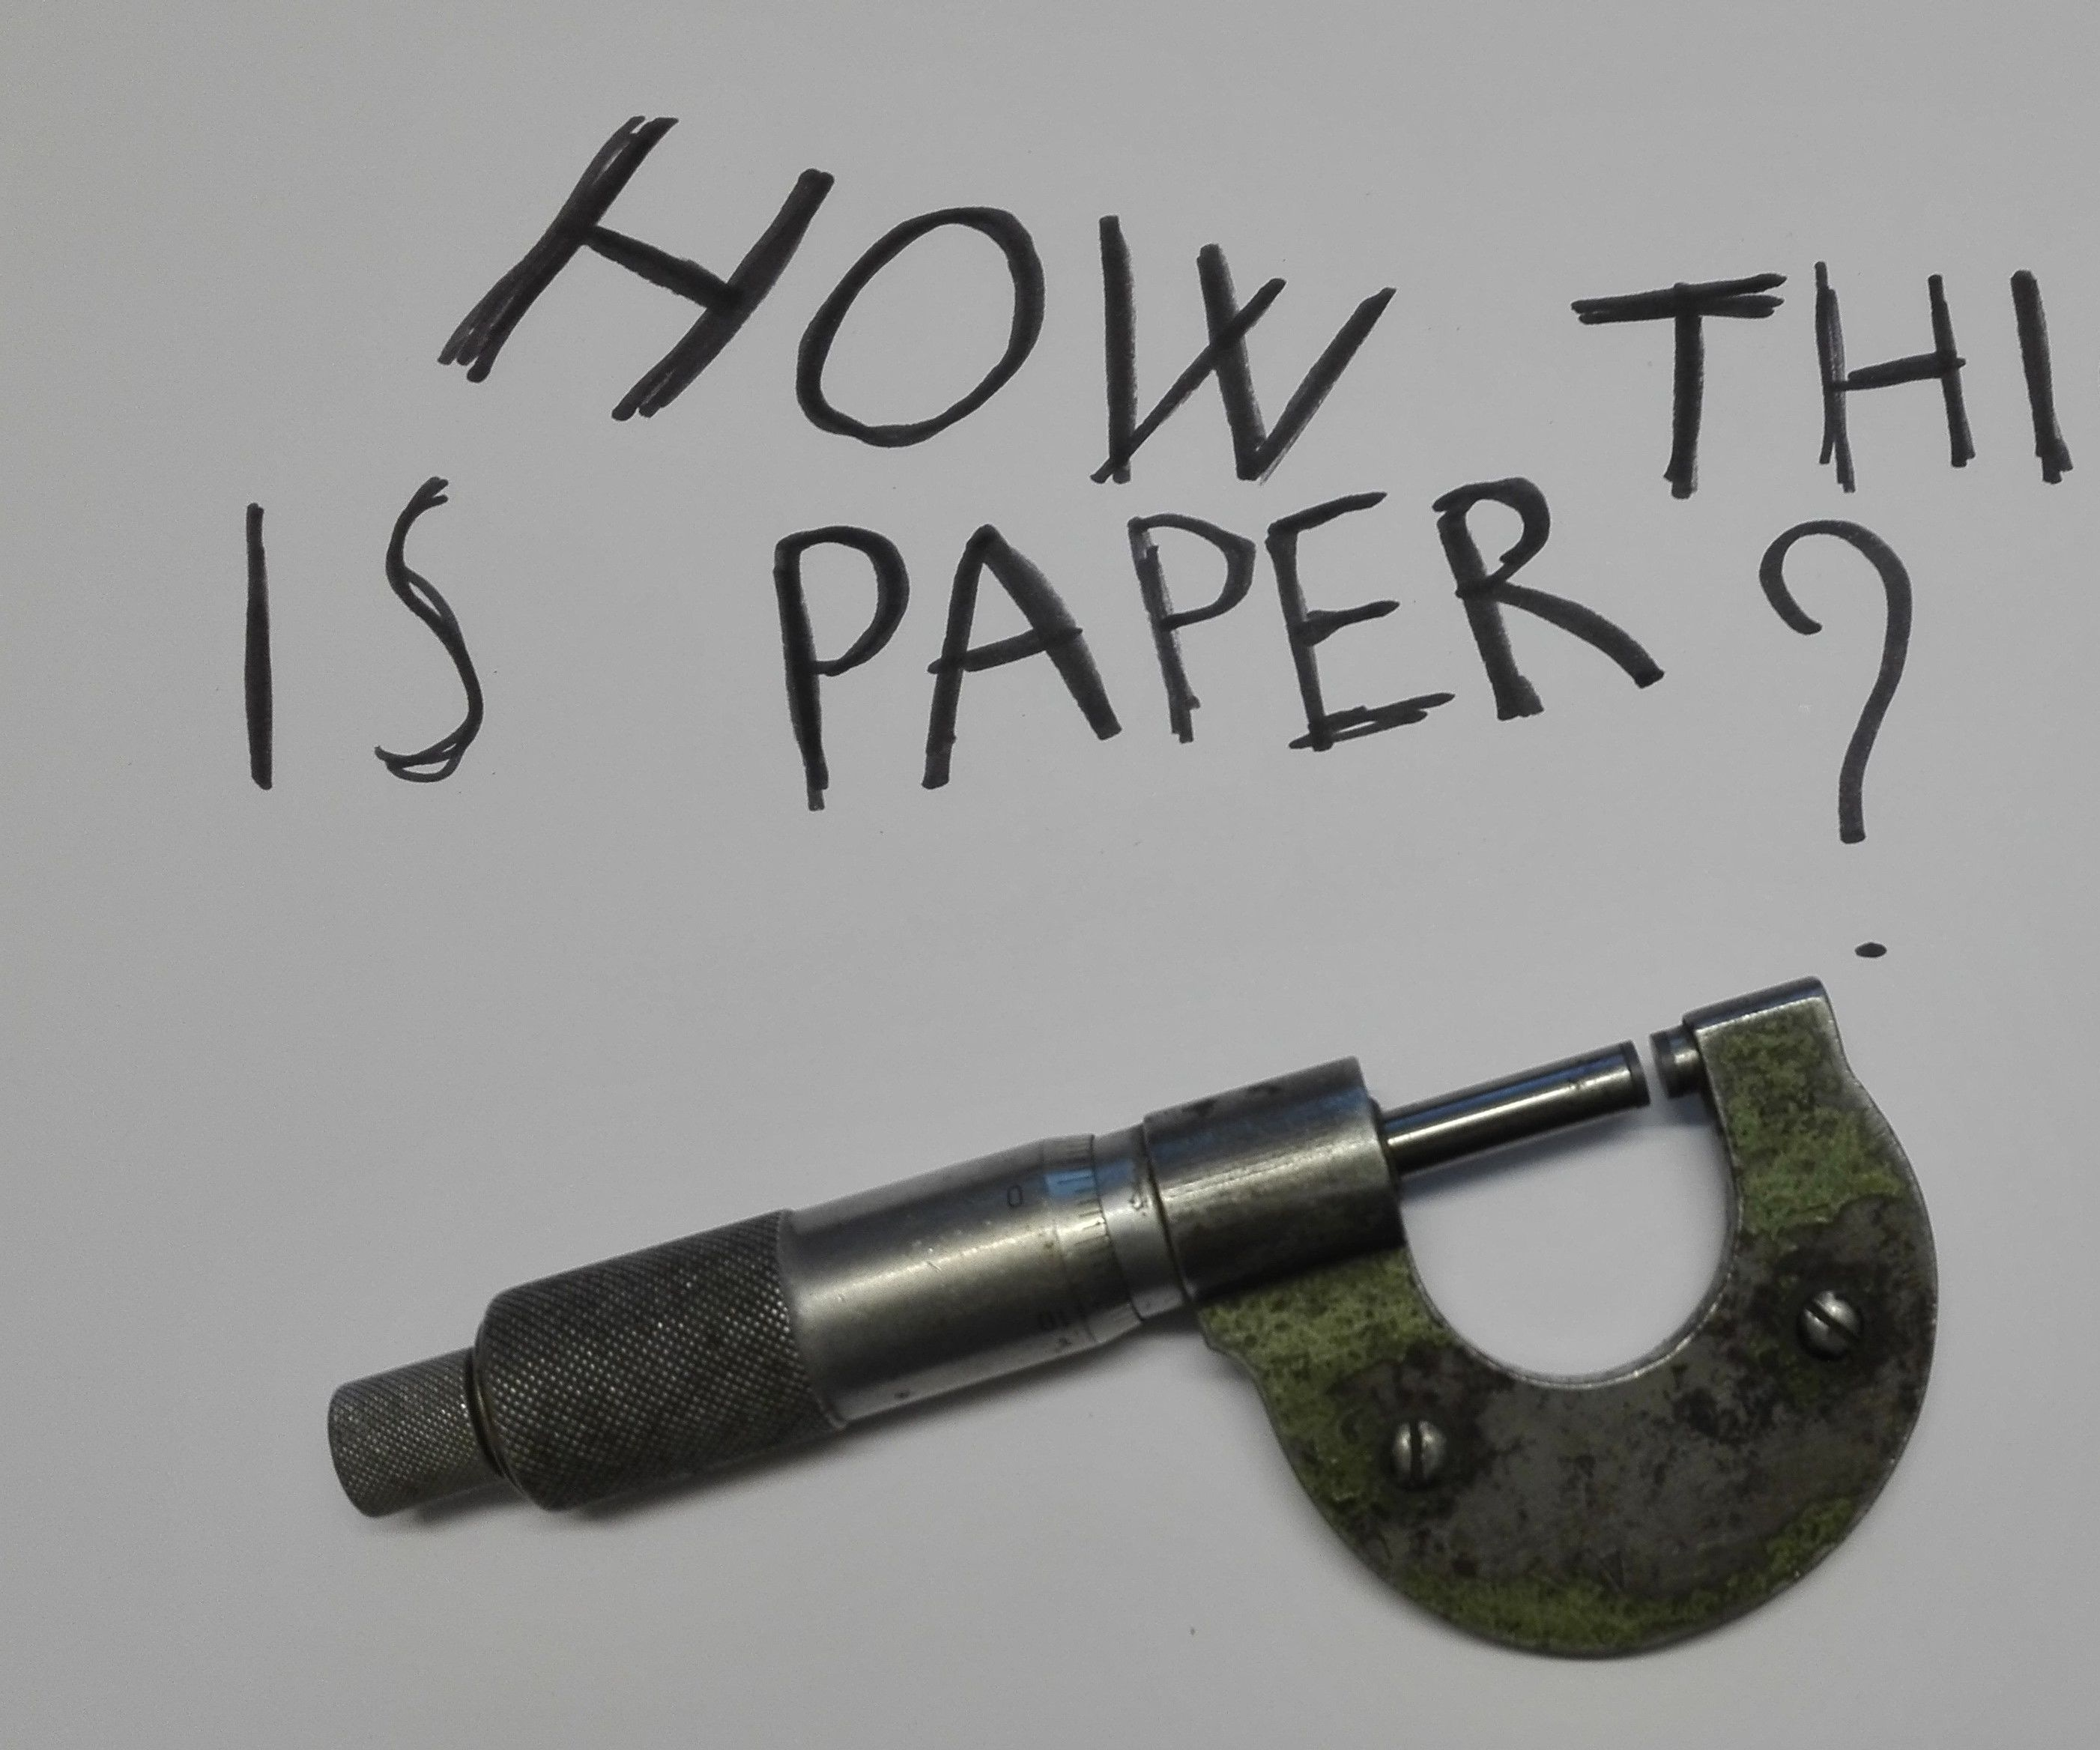 How Thick Is Paper?